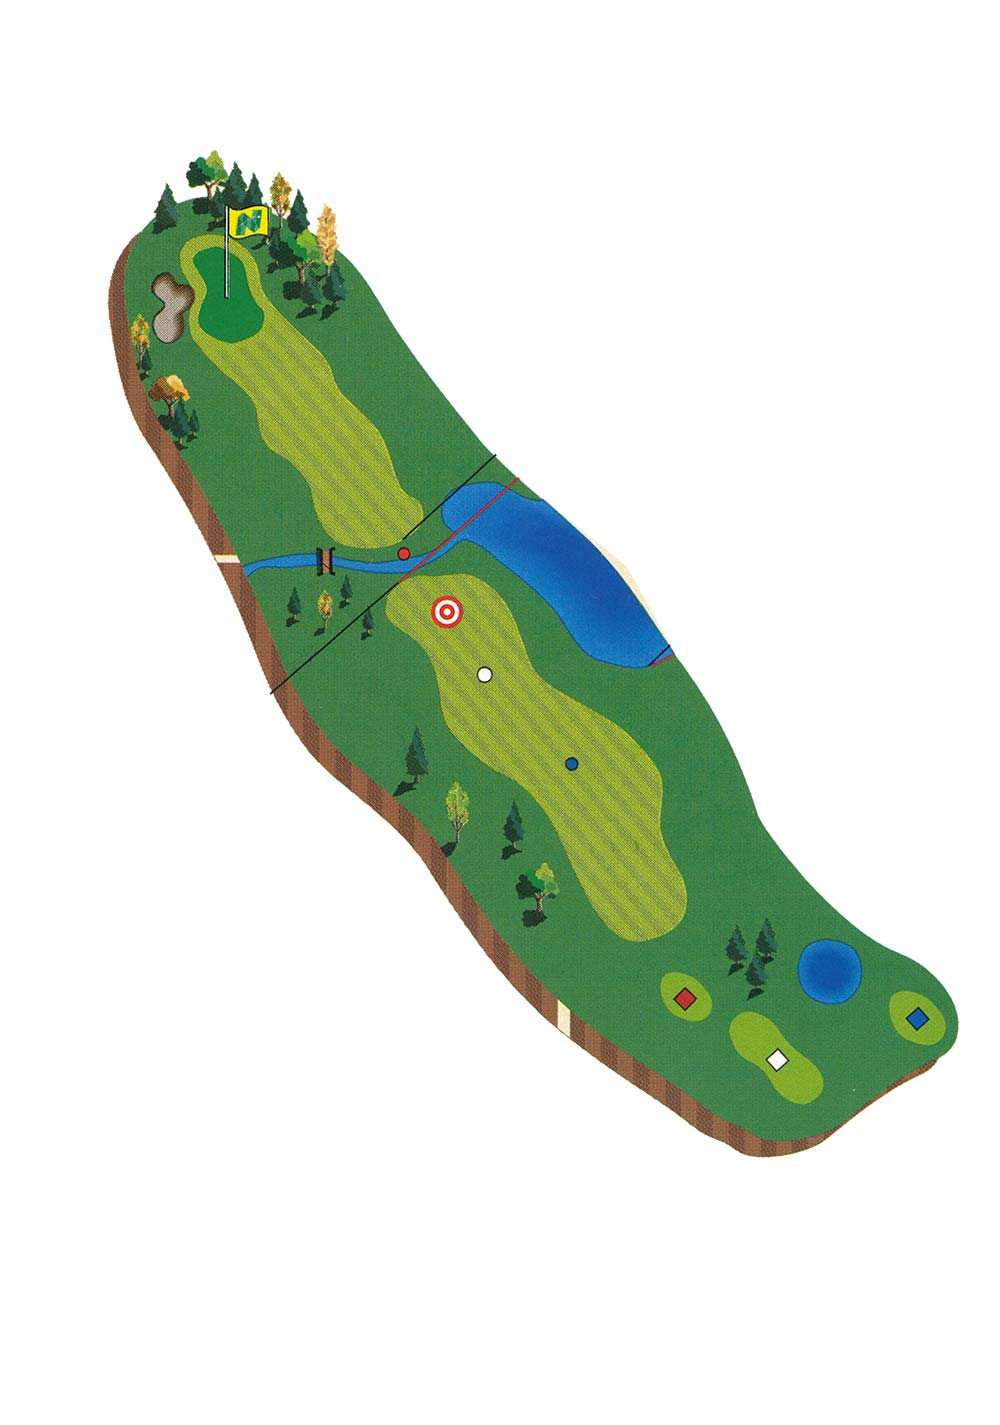 NS Course Description - Hole 18